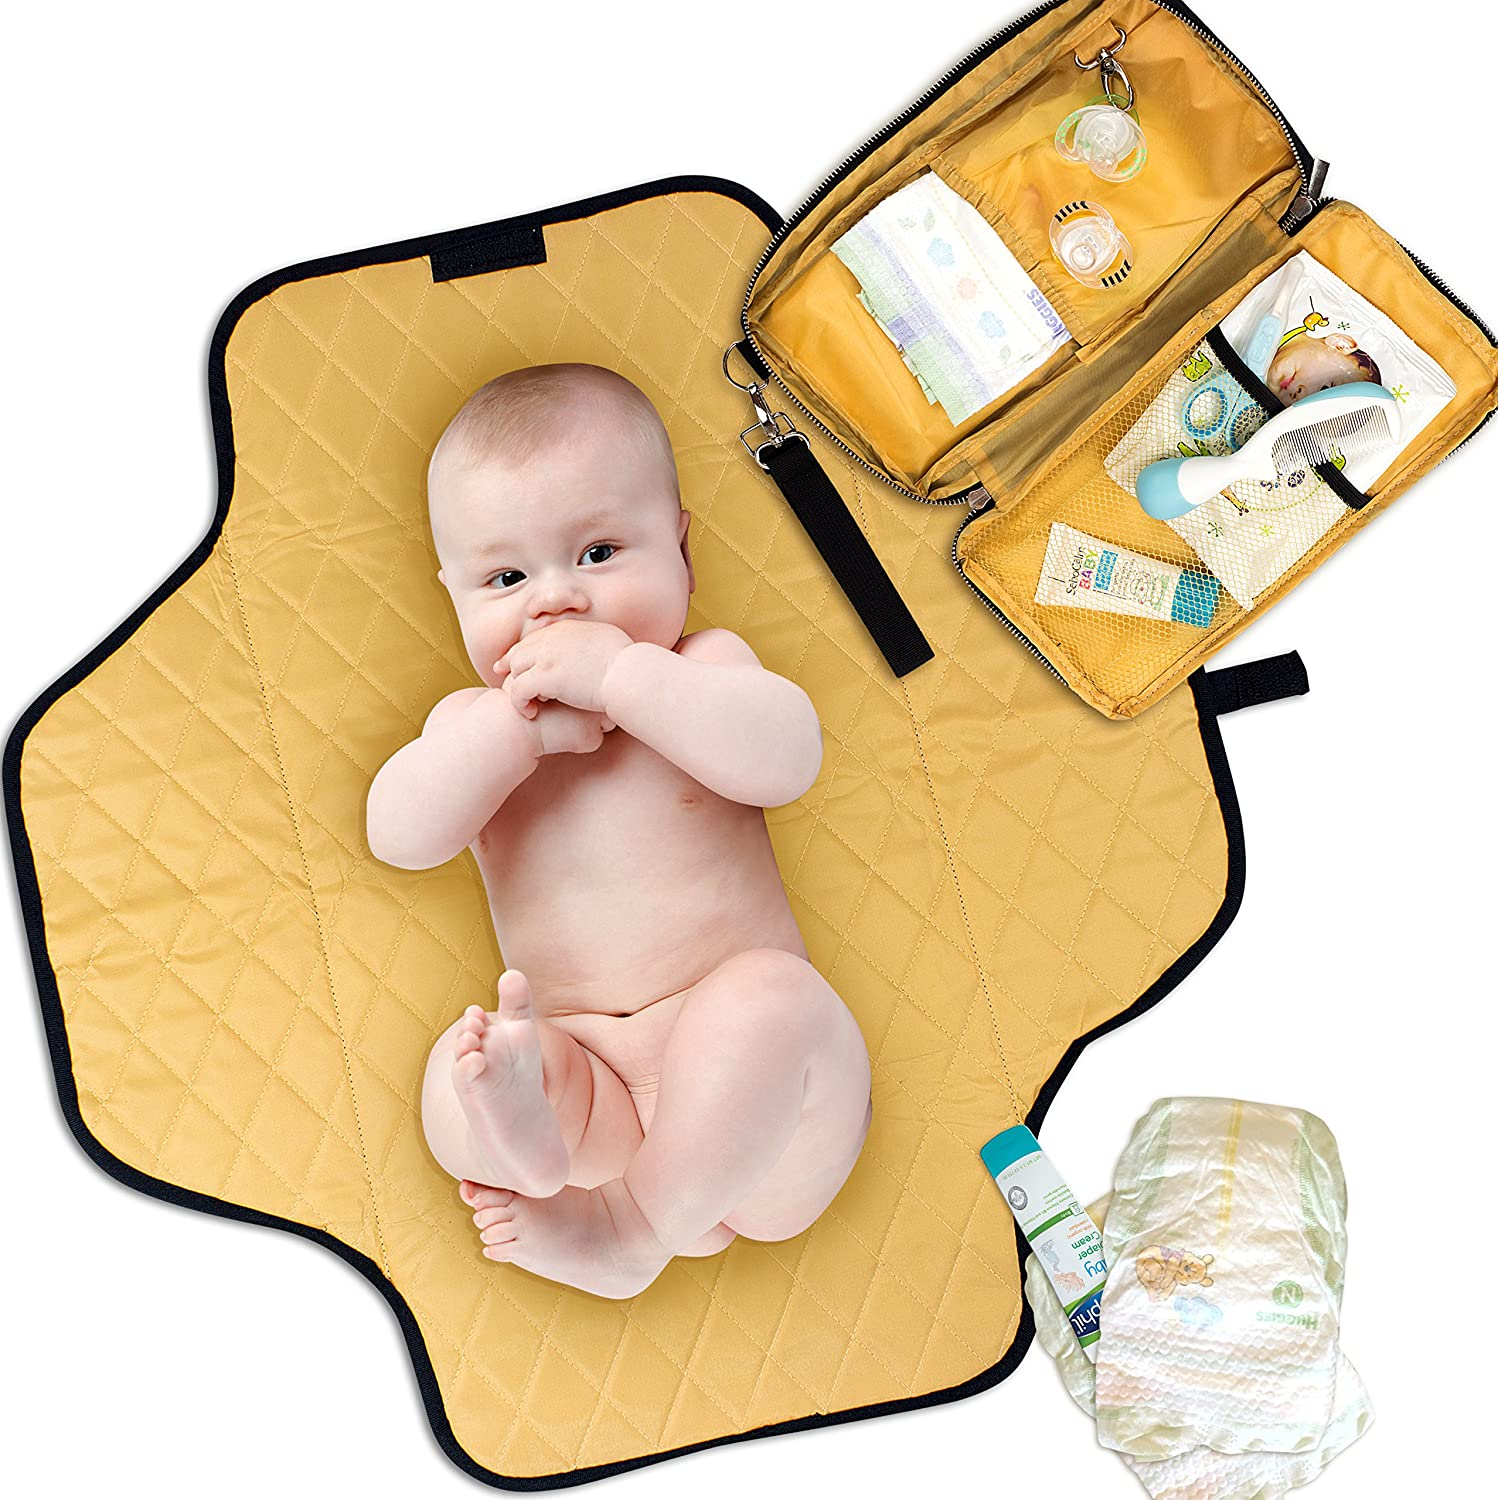 Portable Changing Pad Diaper Clutch Waterproof – Lightweight Padded Travel Mat – Compact Size Doubles as Car, Diaper Bag, and Stroller Organizer – Great for New Parents and Baby Shower Gifts NETA-LI